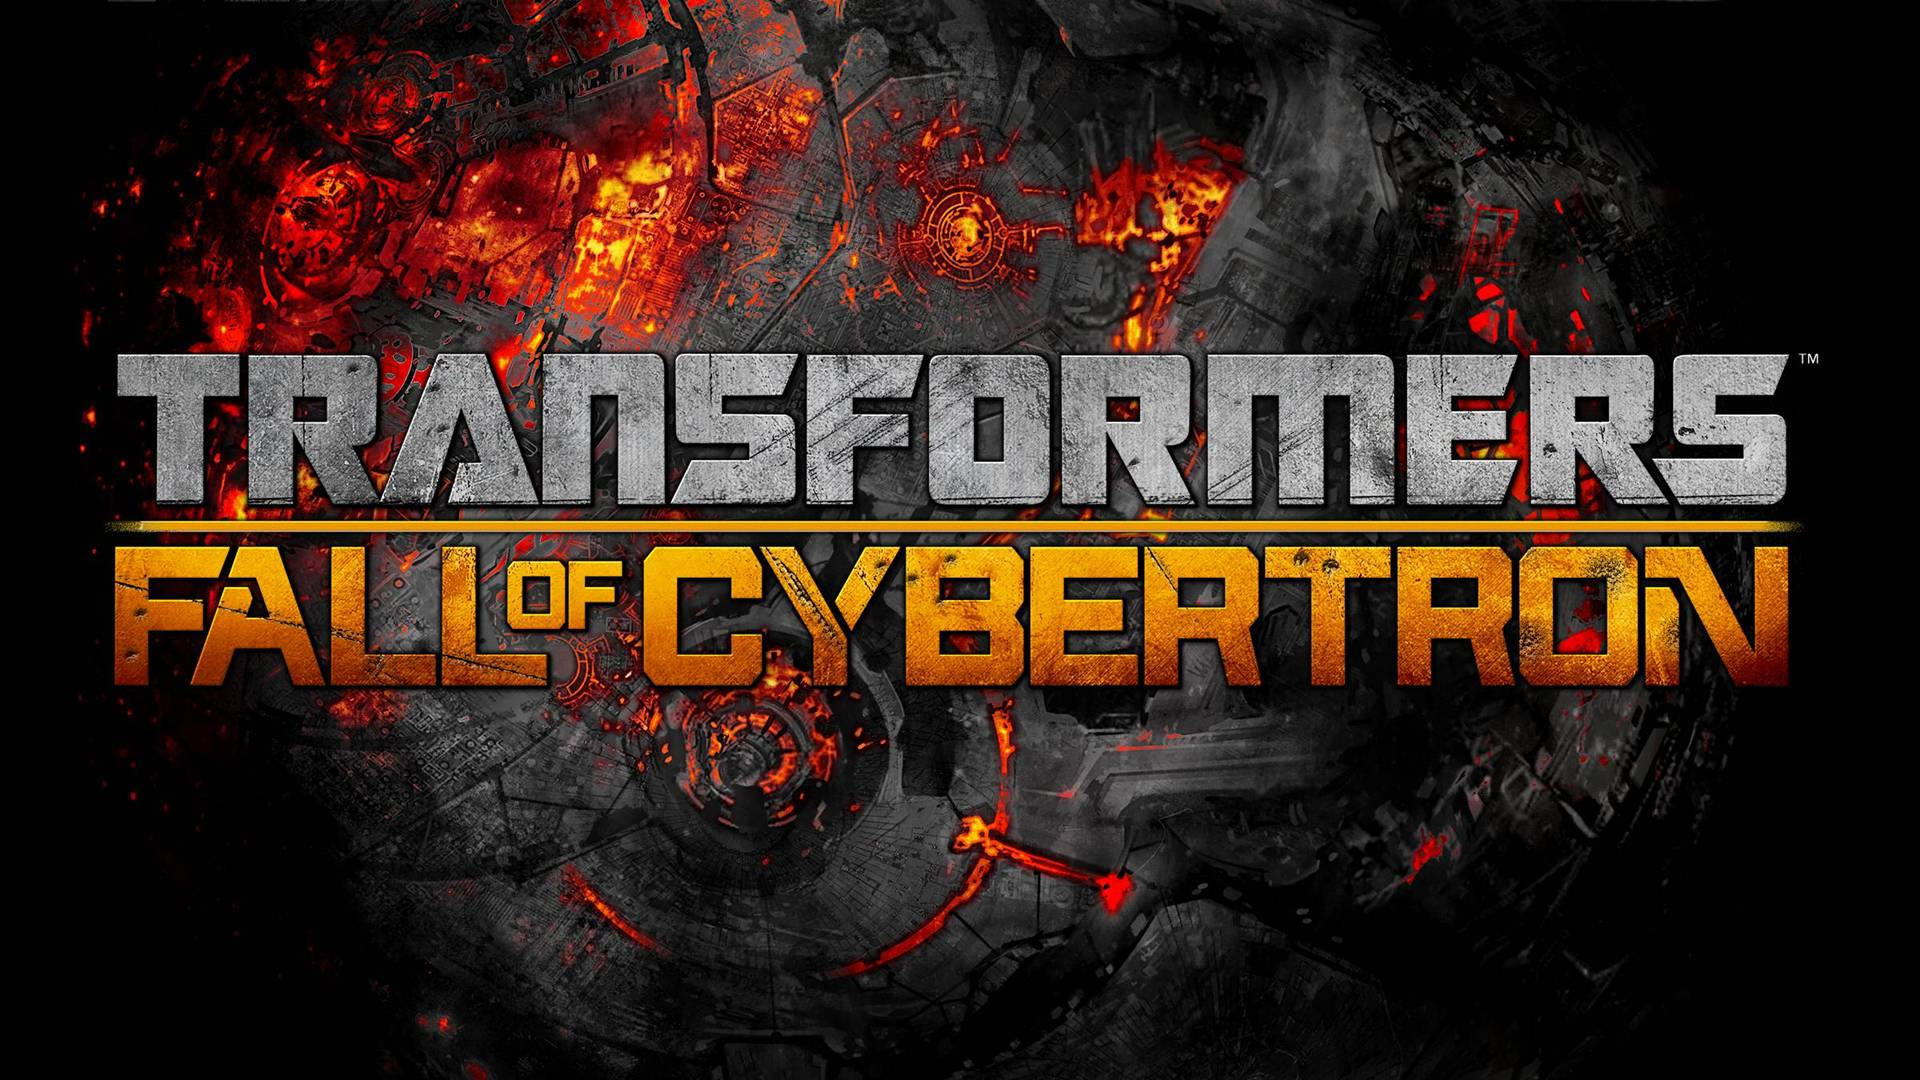 transformers: fall of cybertron wallpapers in hd « video game news